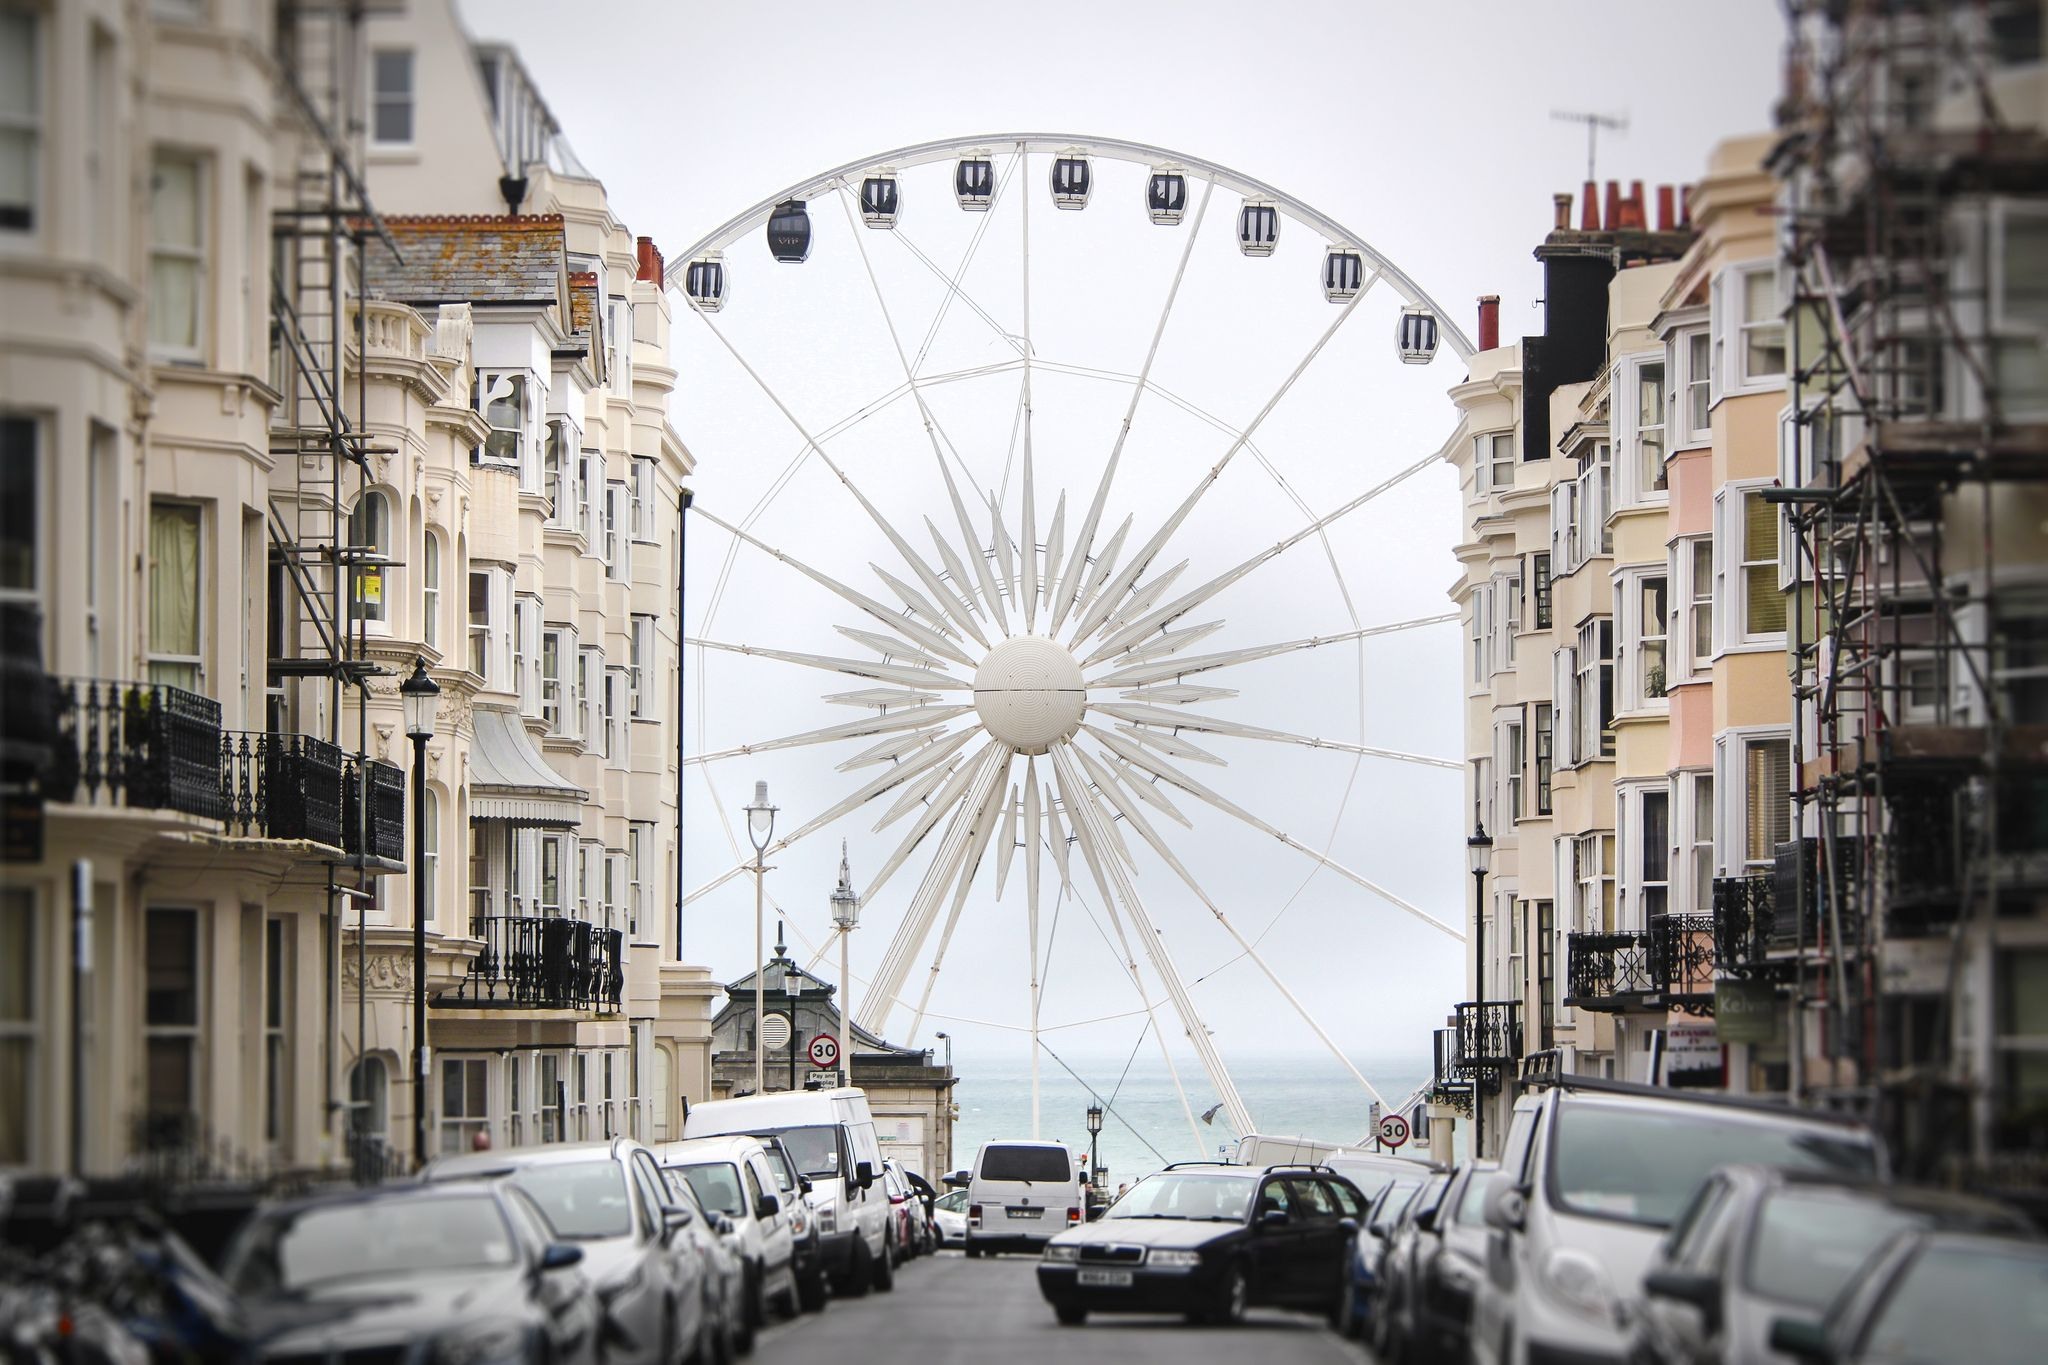 Brighton Town With Images Day Trips From London Brighton Day Trips